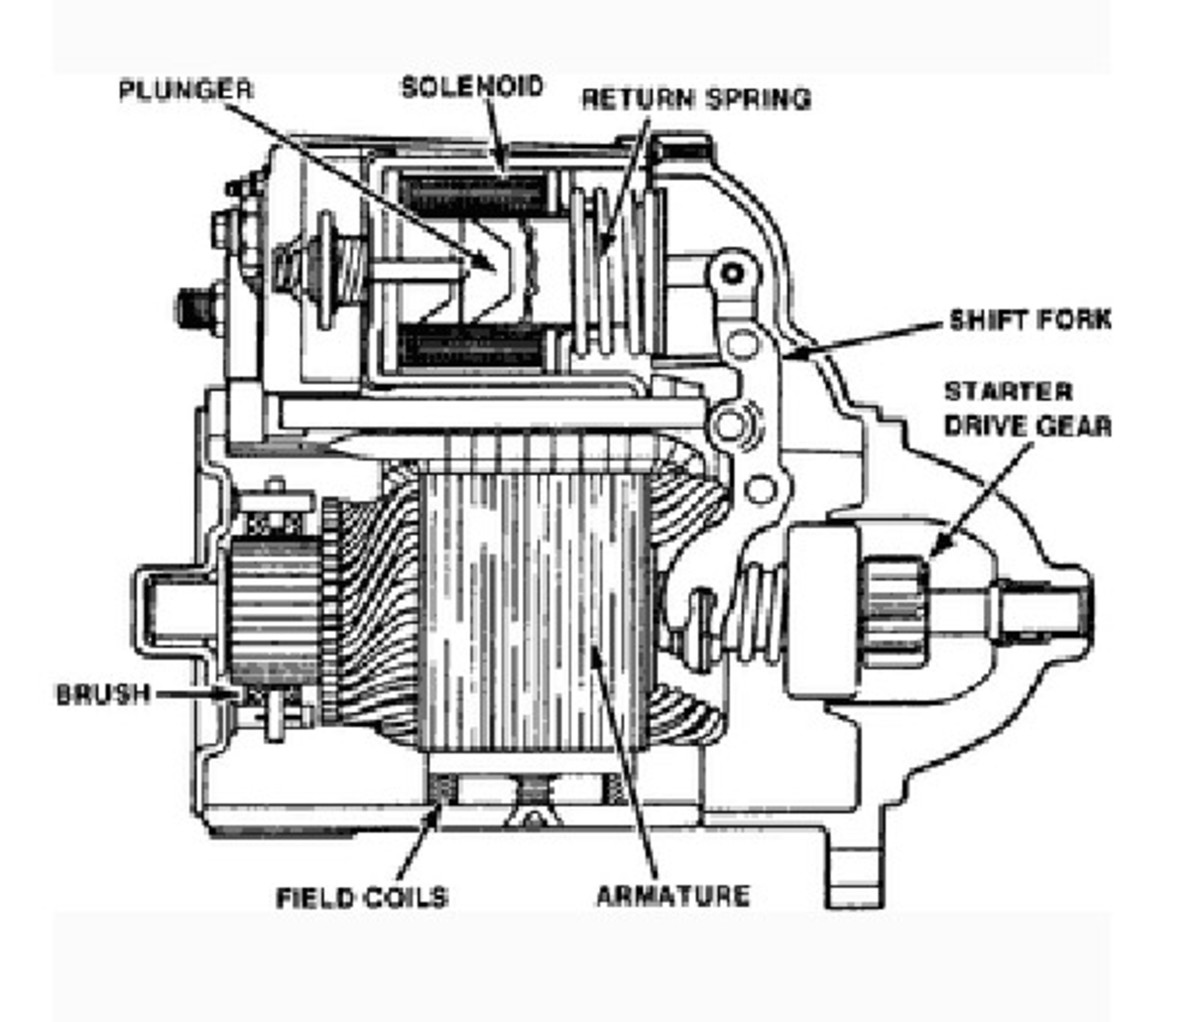 Worn starter motor brushes can lead to engine starter problems.